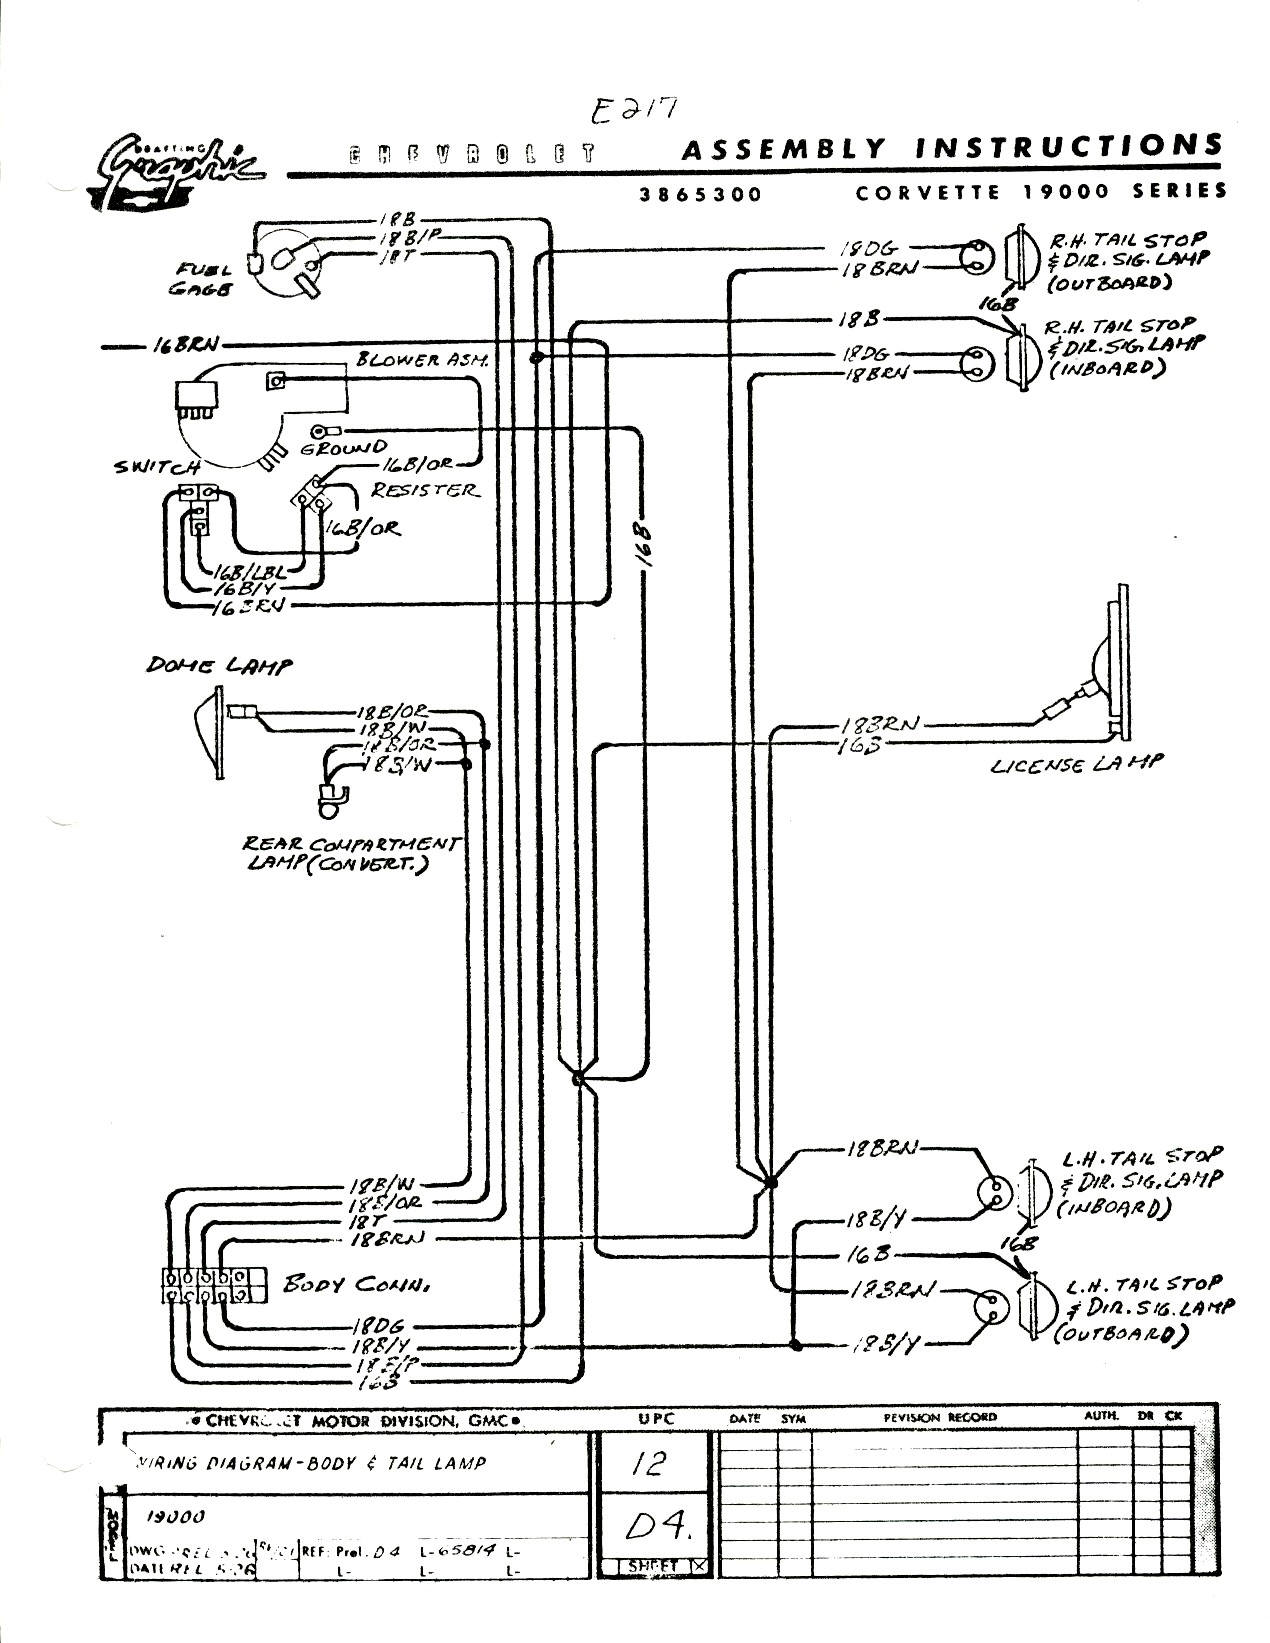 1980 corvette wiring diagram pdf